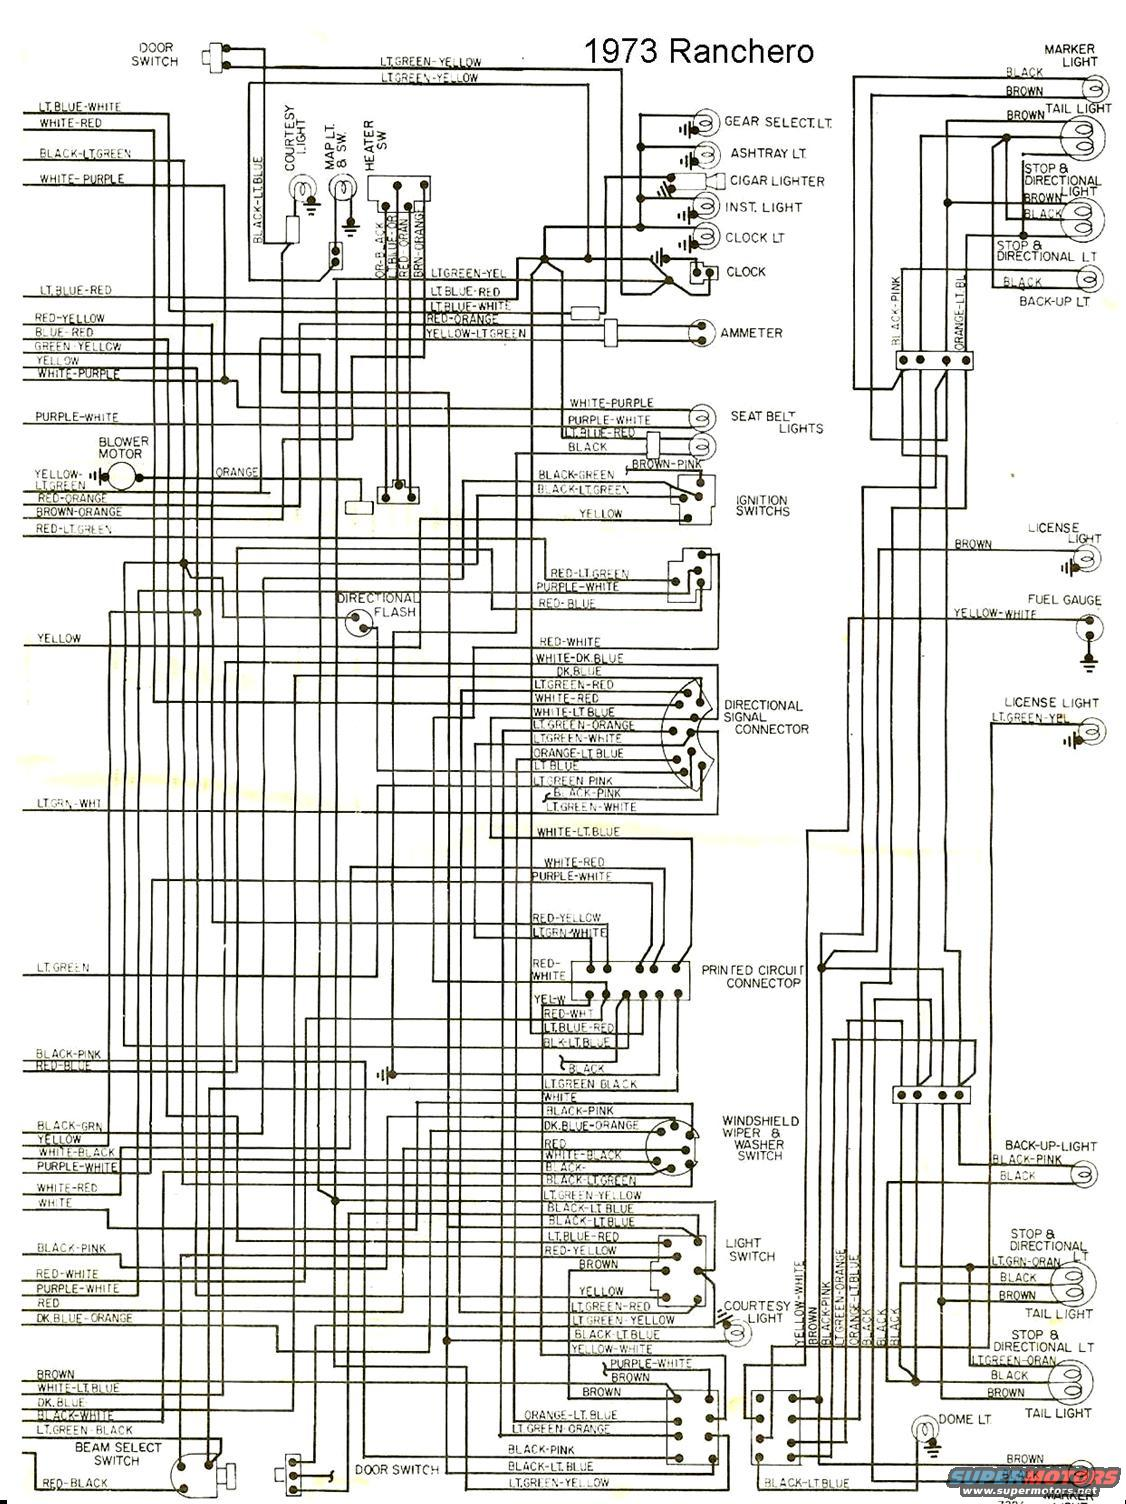 1973 ford ranchero wiring diagram | the site share images ... 1970 ford ranchero wiring diagram